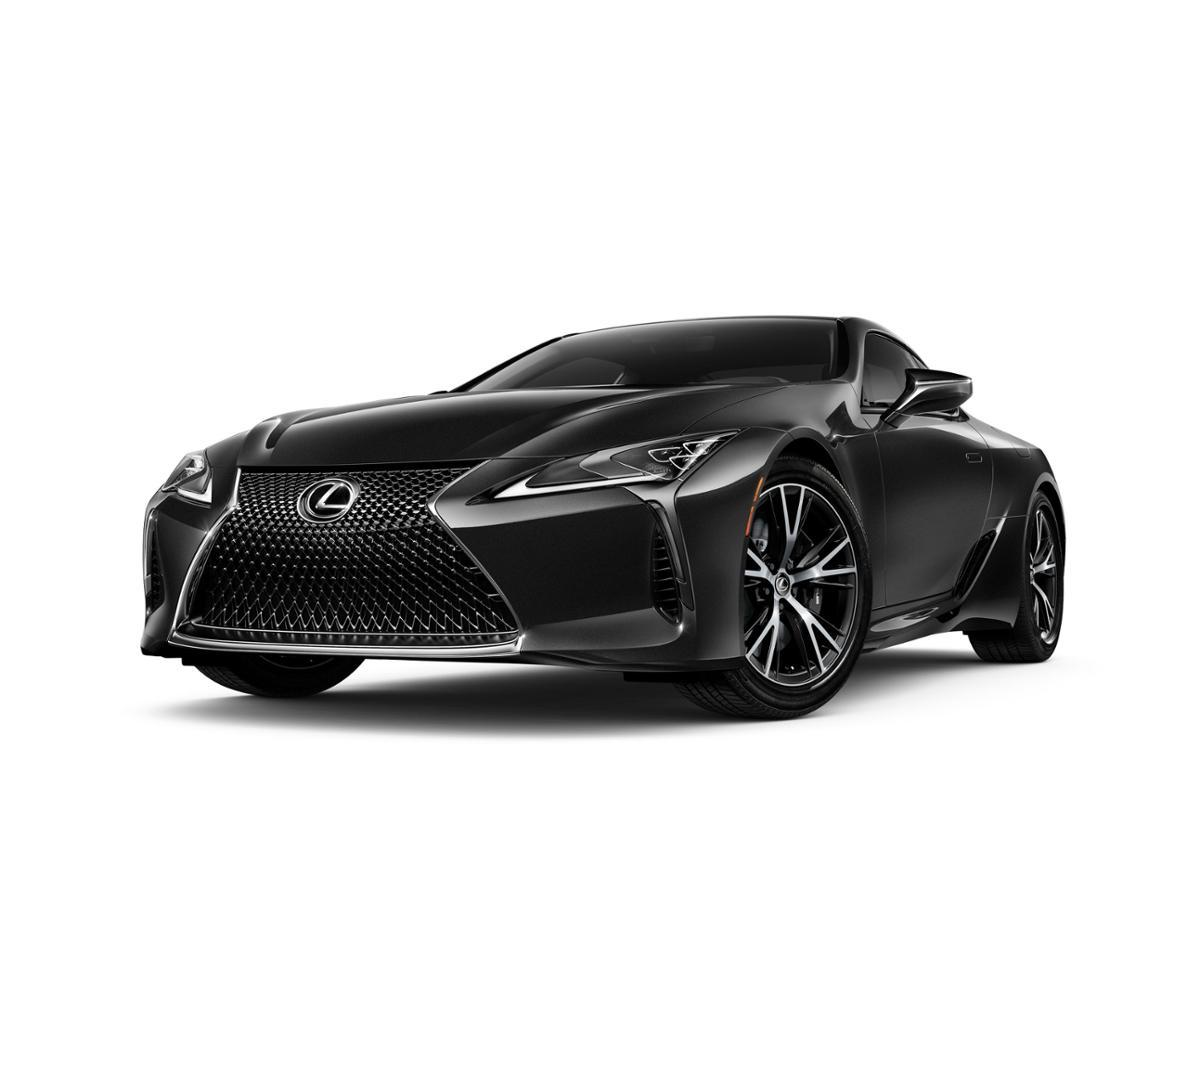 New Lexus Lc 500 Lexus Cars Suvs Trucks New Lexus Lc 500 Lexus